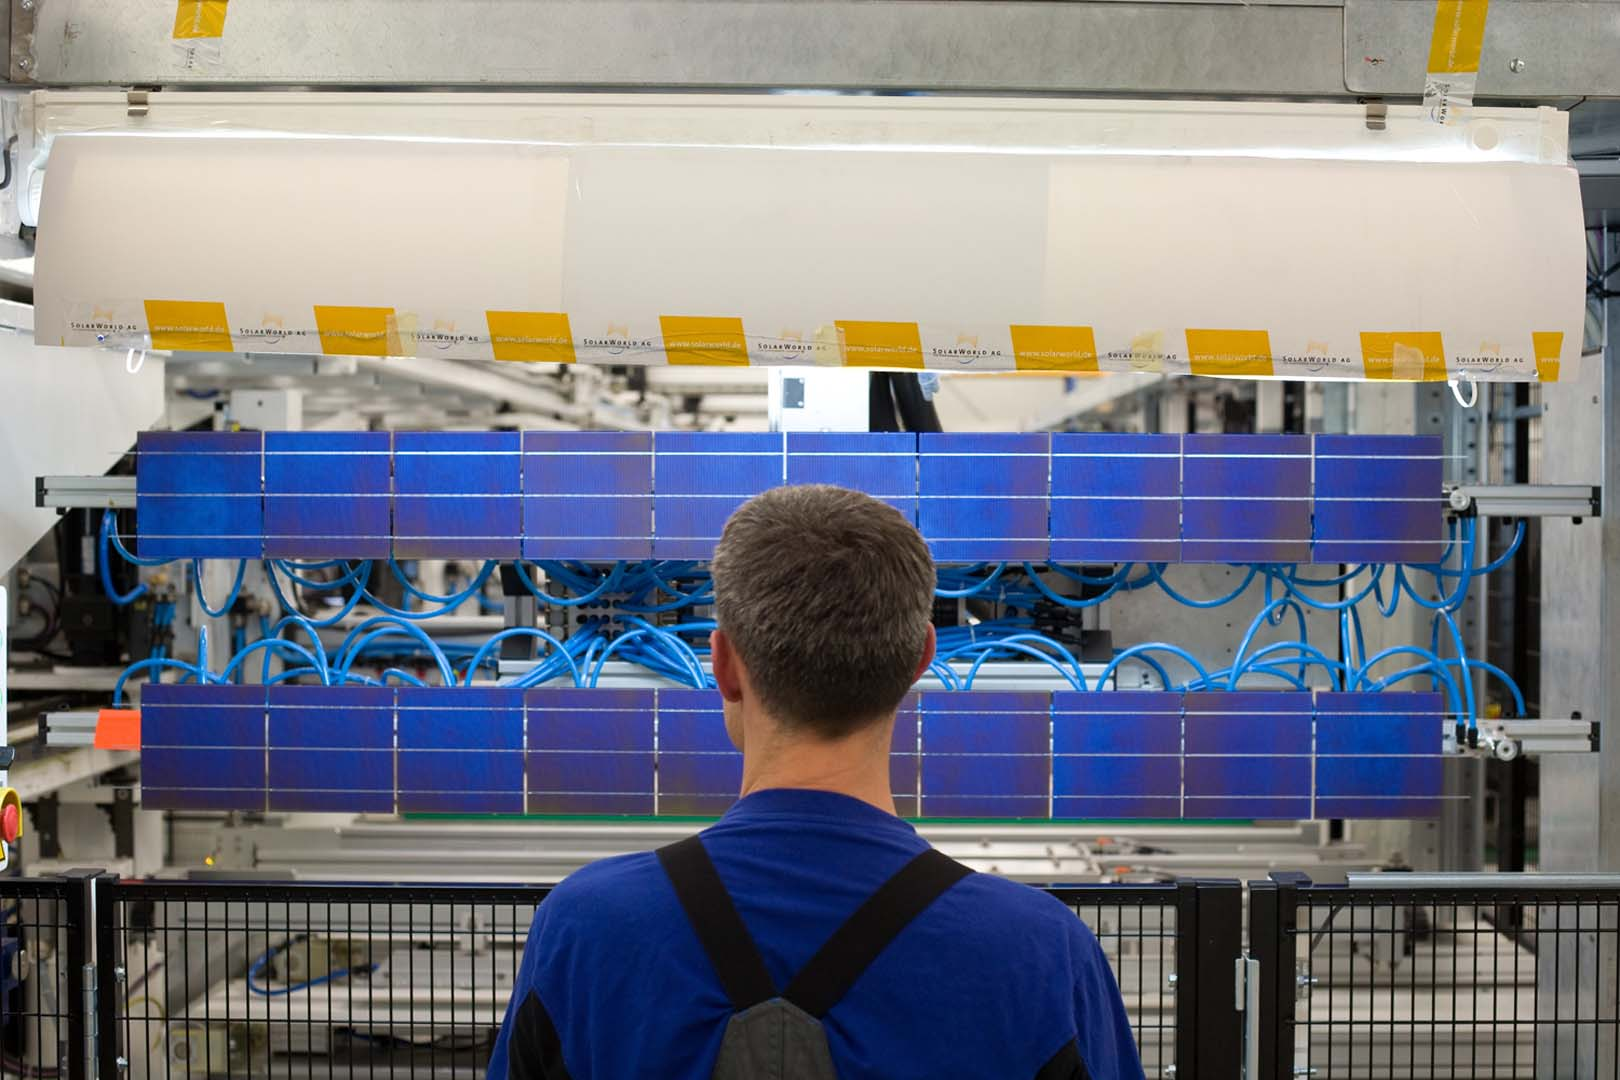 The US ITC investigation could lead to exclusion orders preventing the companies from importing infringing products into the US market. Hanwha Q CELLS said that the investigation would shortly be assigned to an administrative law judge and a schedule set for the case. Image: SolarWorld